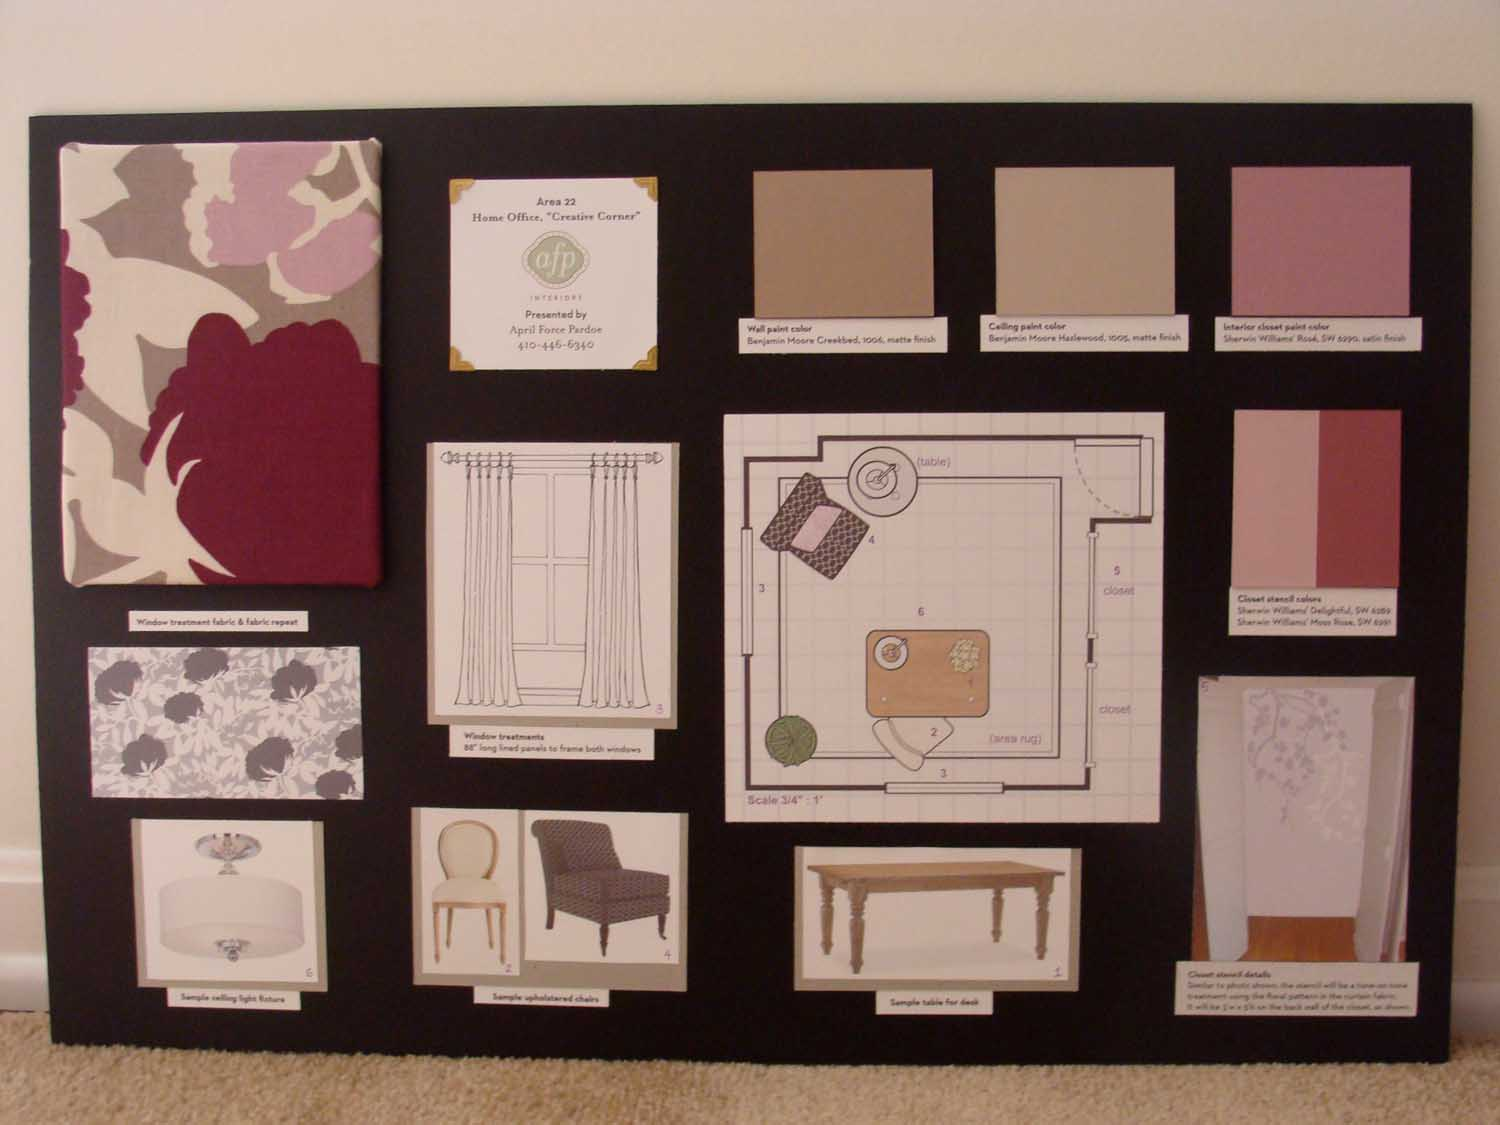 Howard County Ellicott City Decorator Show House Home Office Design Details Mood Board – Designer Bestie April Force Pardoe Interiors.jpg